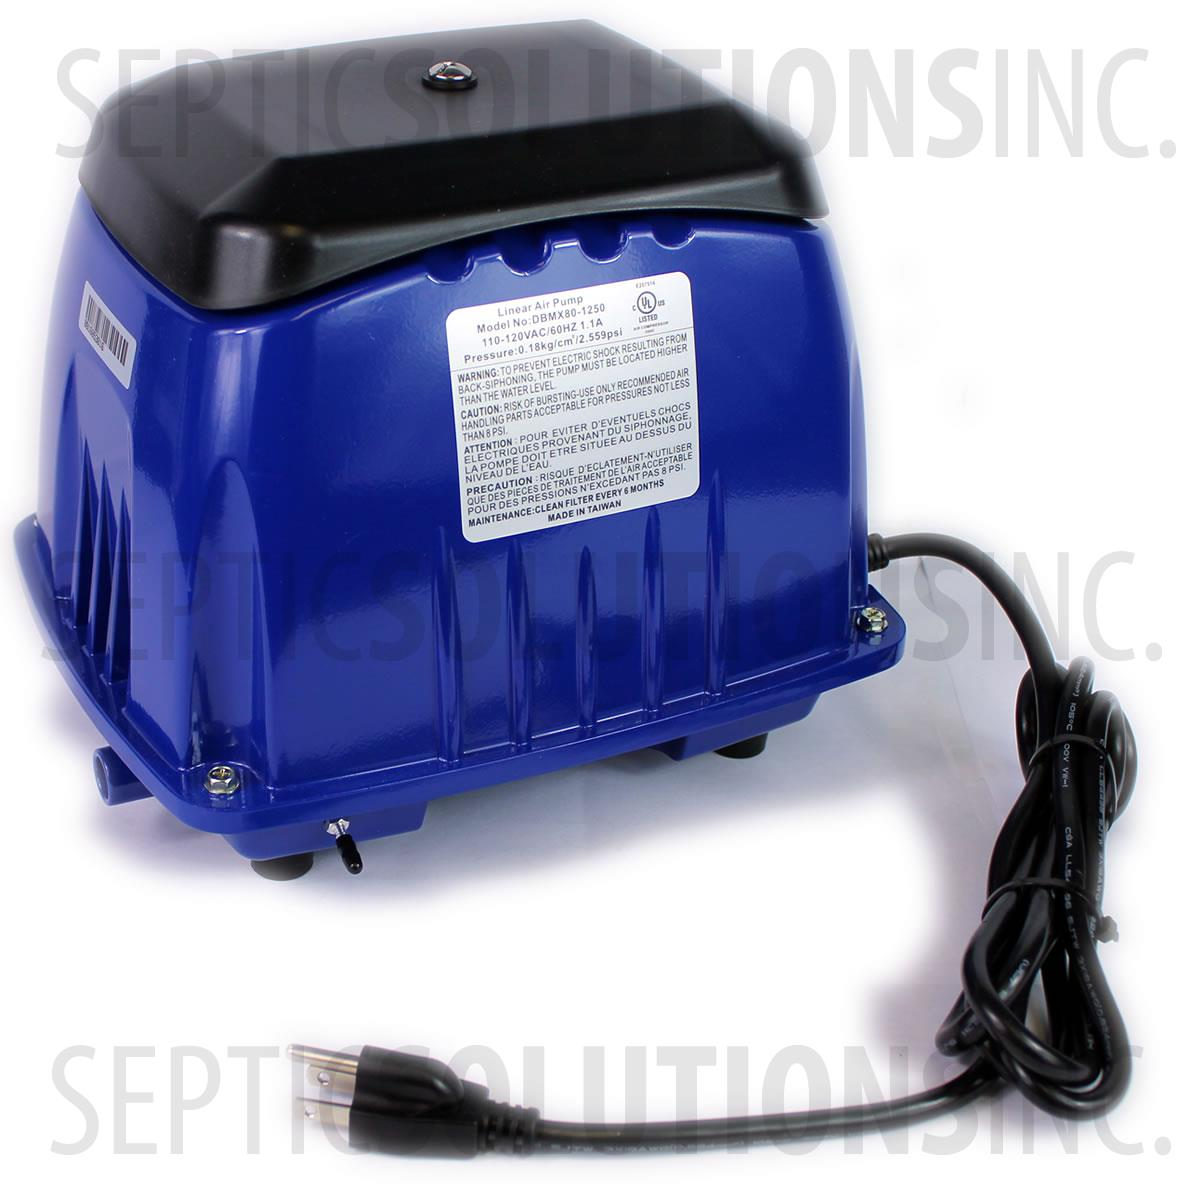 Cyclone Ssx 100 Septic Air Pump Ssx100 Free Shipping